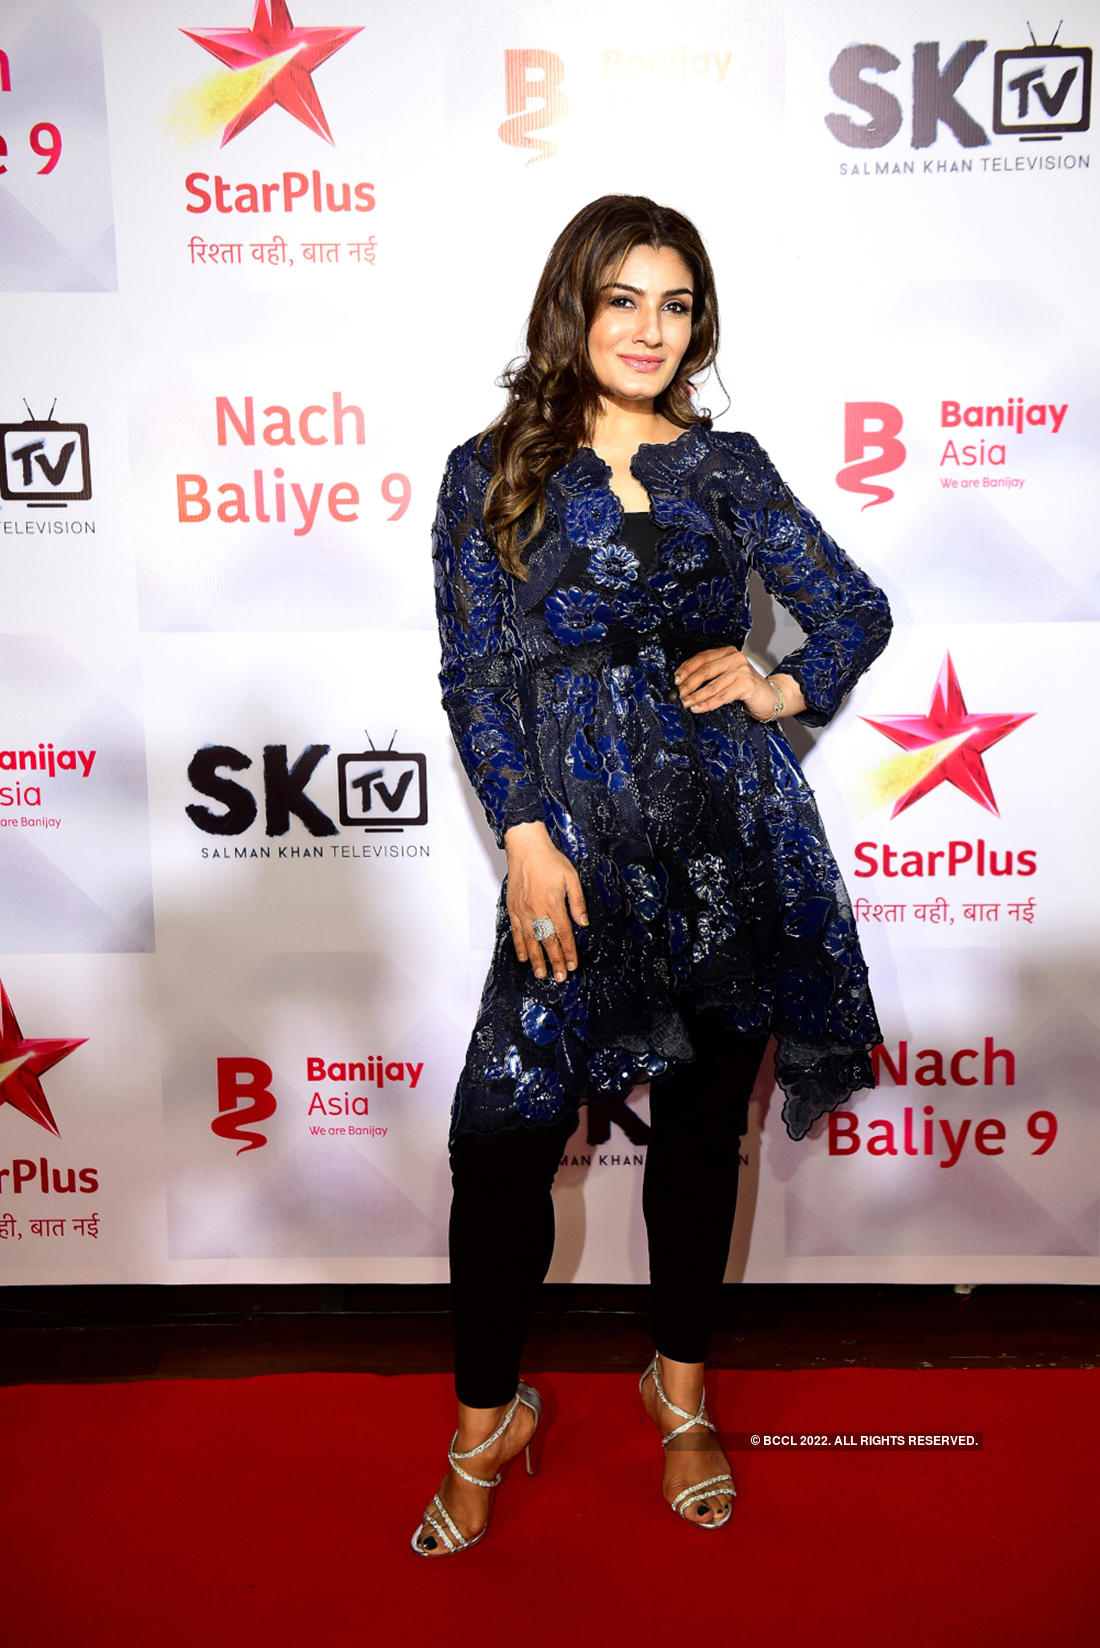 Nach Baliye 9 Success Party: Pictures of celebrities shining bright at the Red Carpet